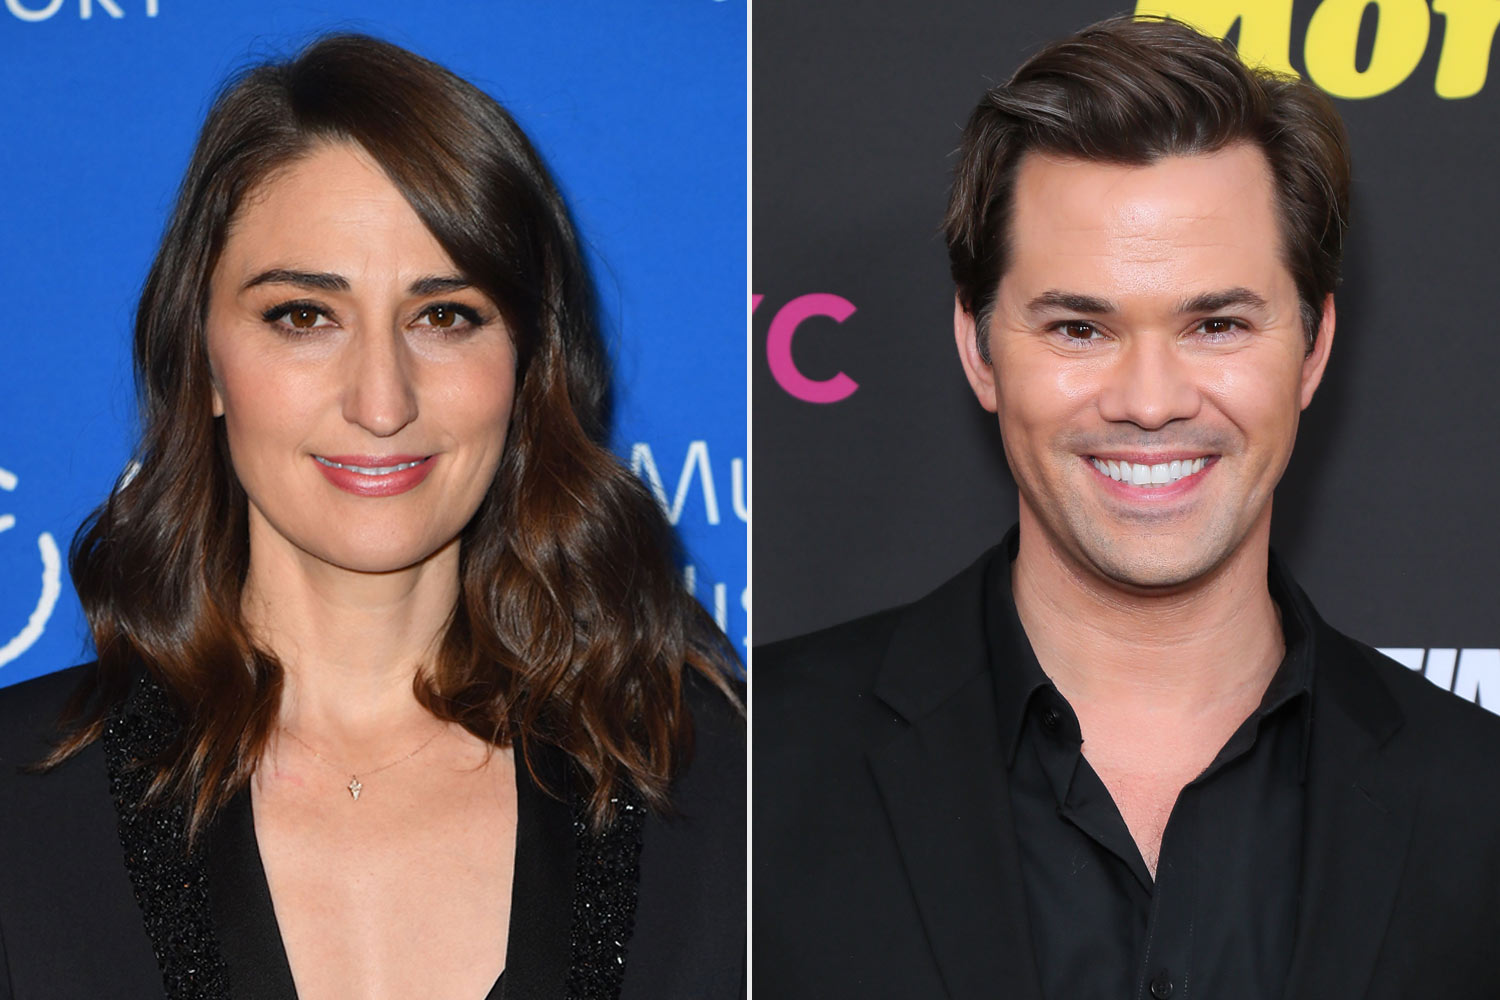 Sara Bareilles and Andrew Rannells